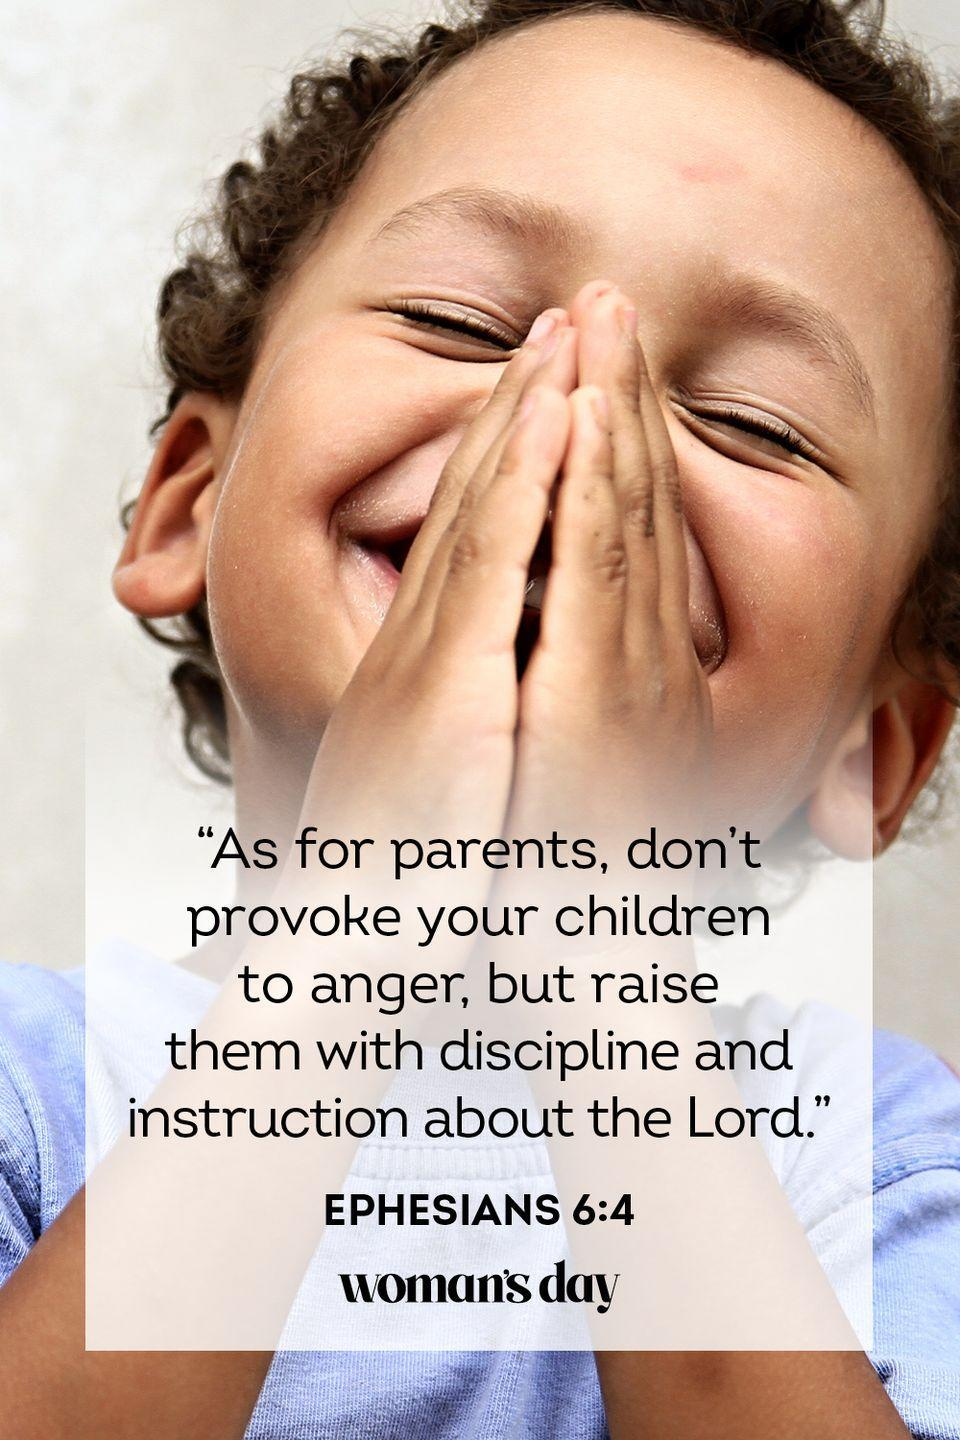 """<p>""""As for parents, don't provoke your children to anger, but raise them with discipline and instruction about the Lord."""" — Ephesians 6:4</p><p><strong>The Good News: </strong>Parents, do not harm or distress your children, but when you discipline them when necessary, think of what Jesus do. Give them grace and compassion.</p>"""